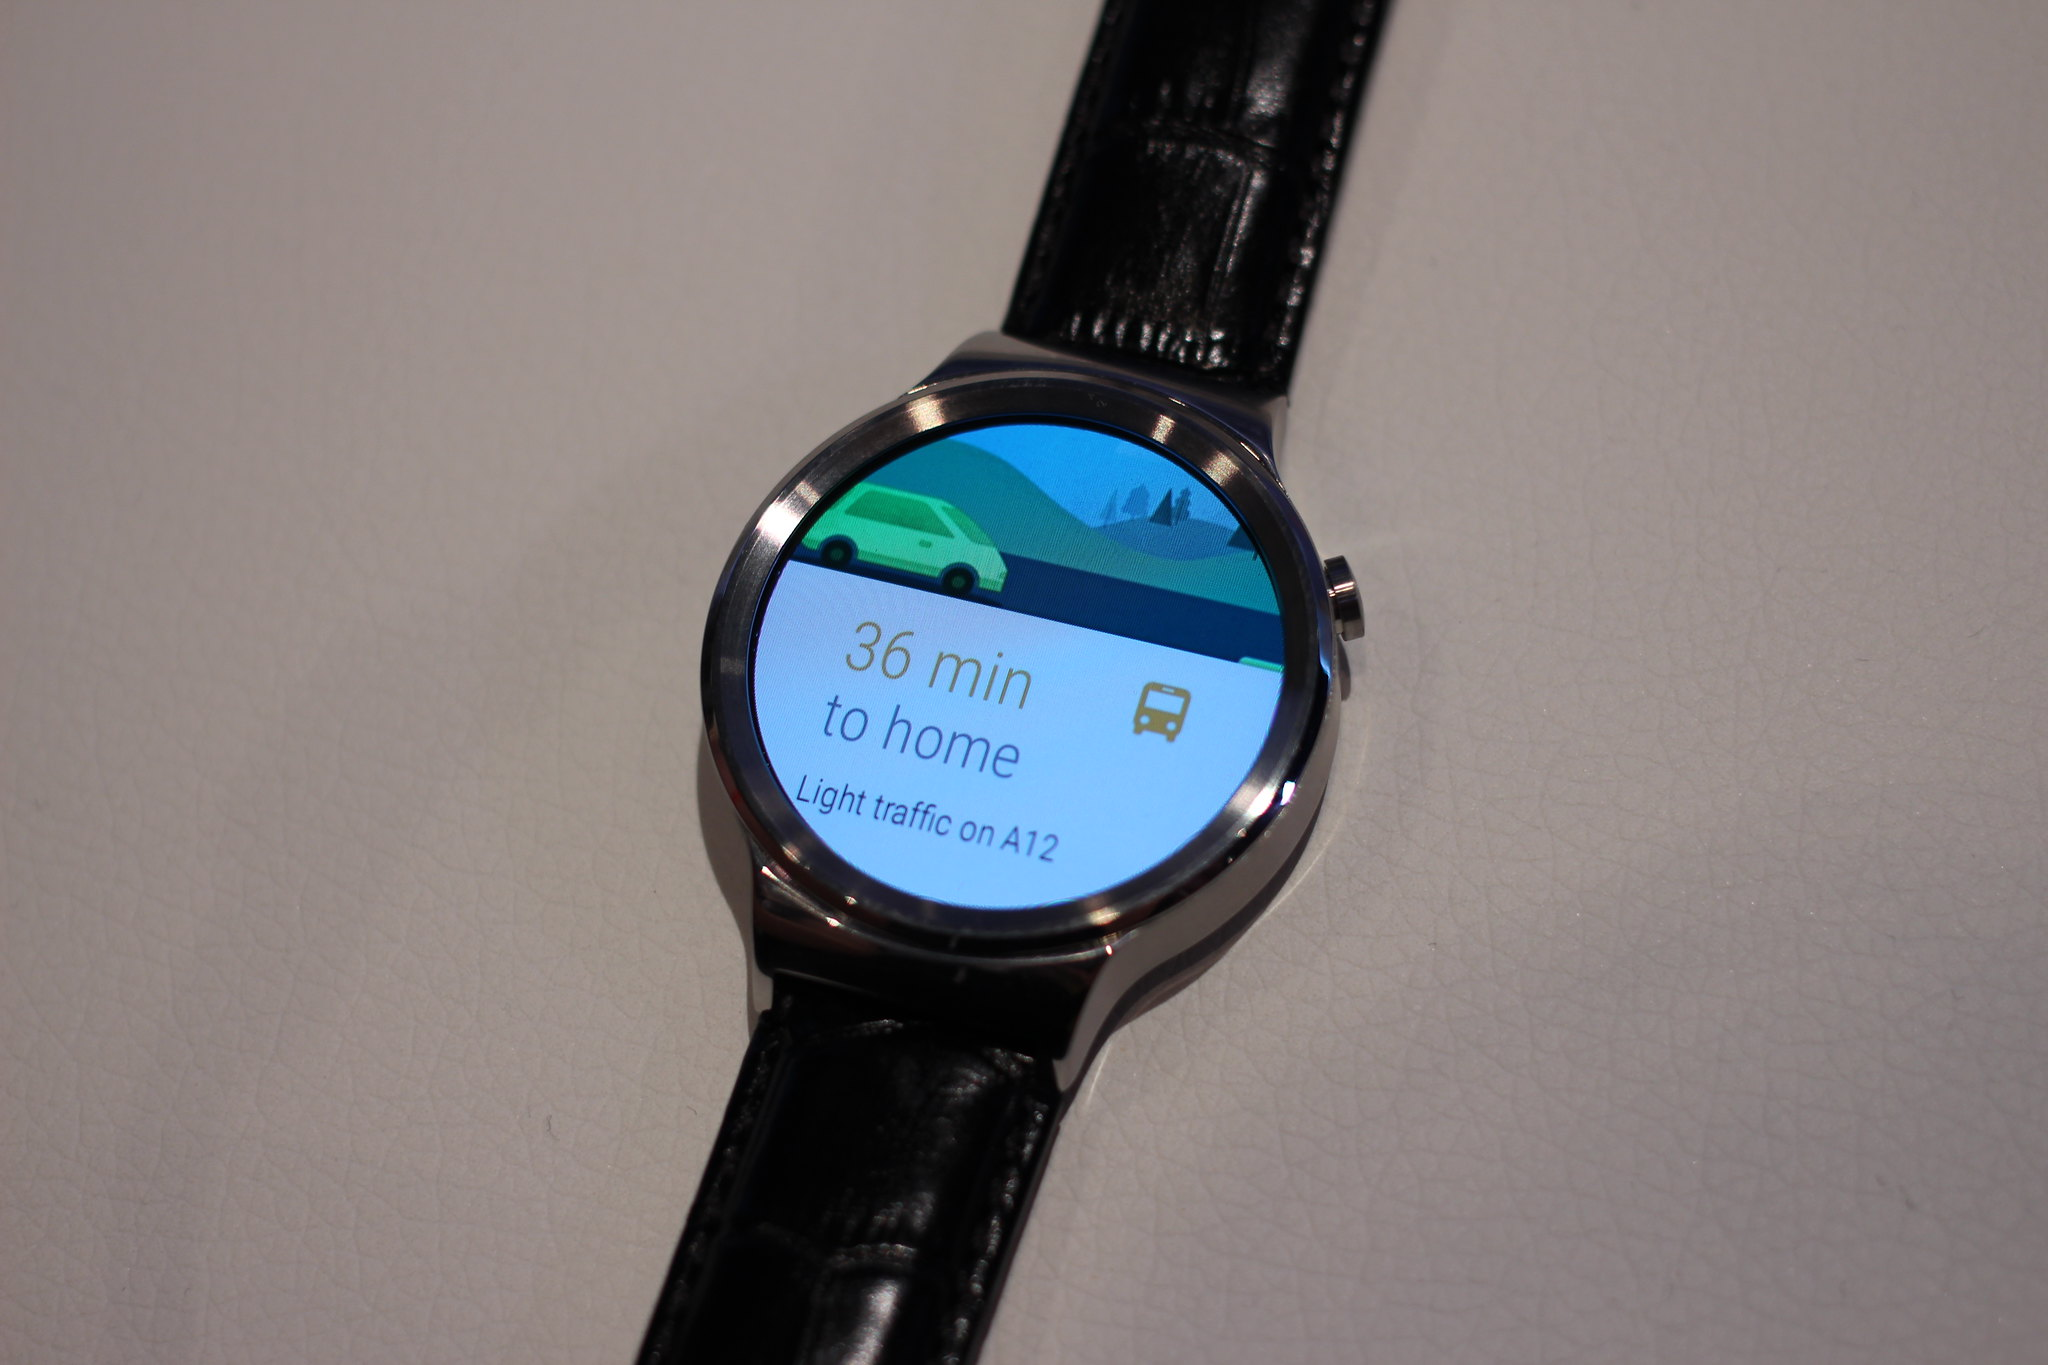 Huawei Smartwatch 2 Pros and Cons